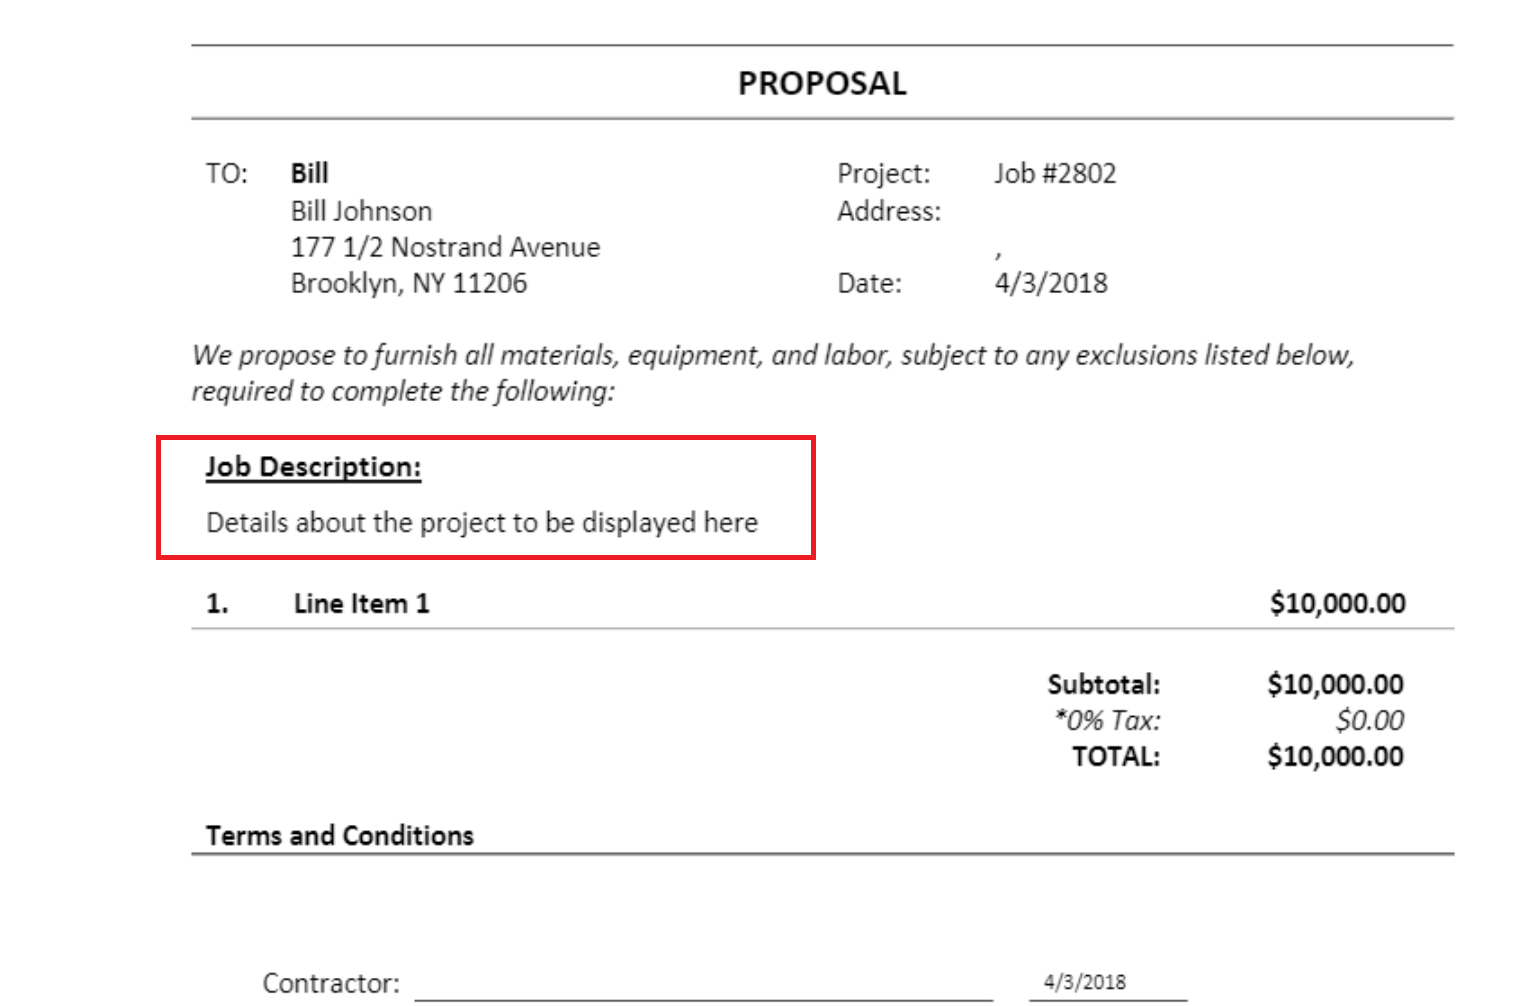 projectdescription2 Additional Contract Options